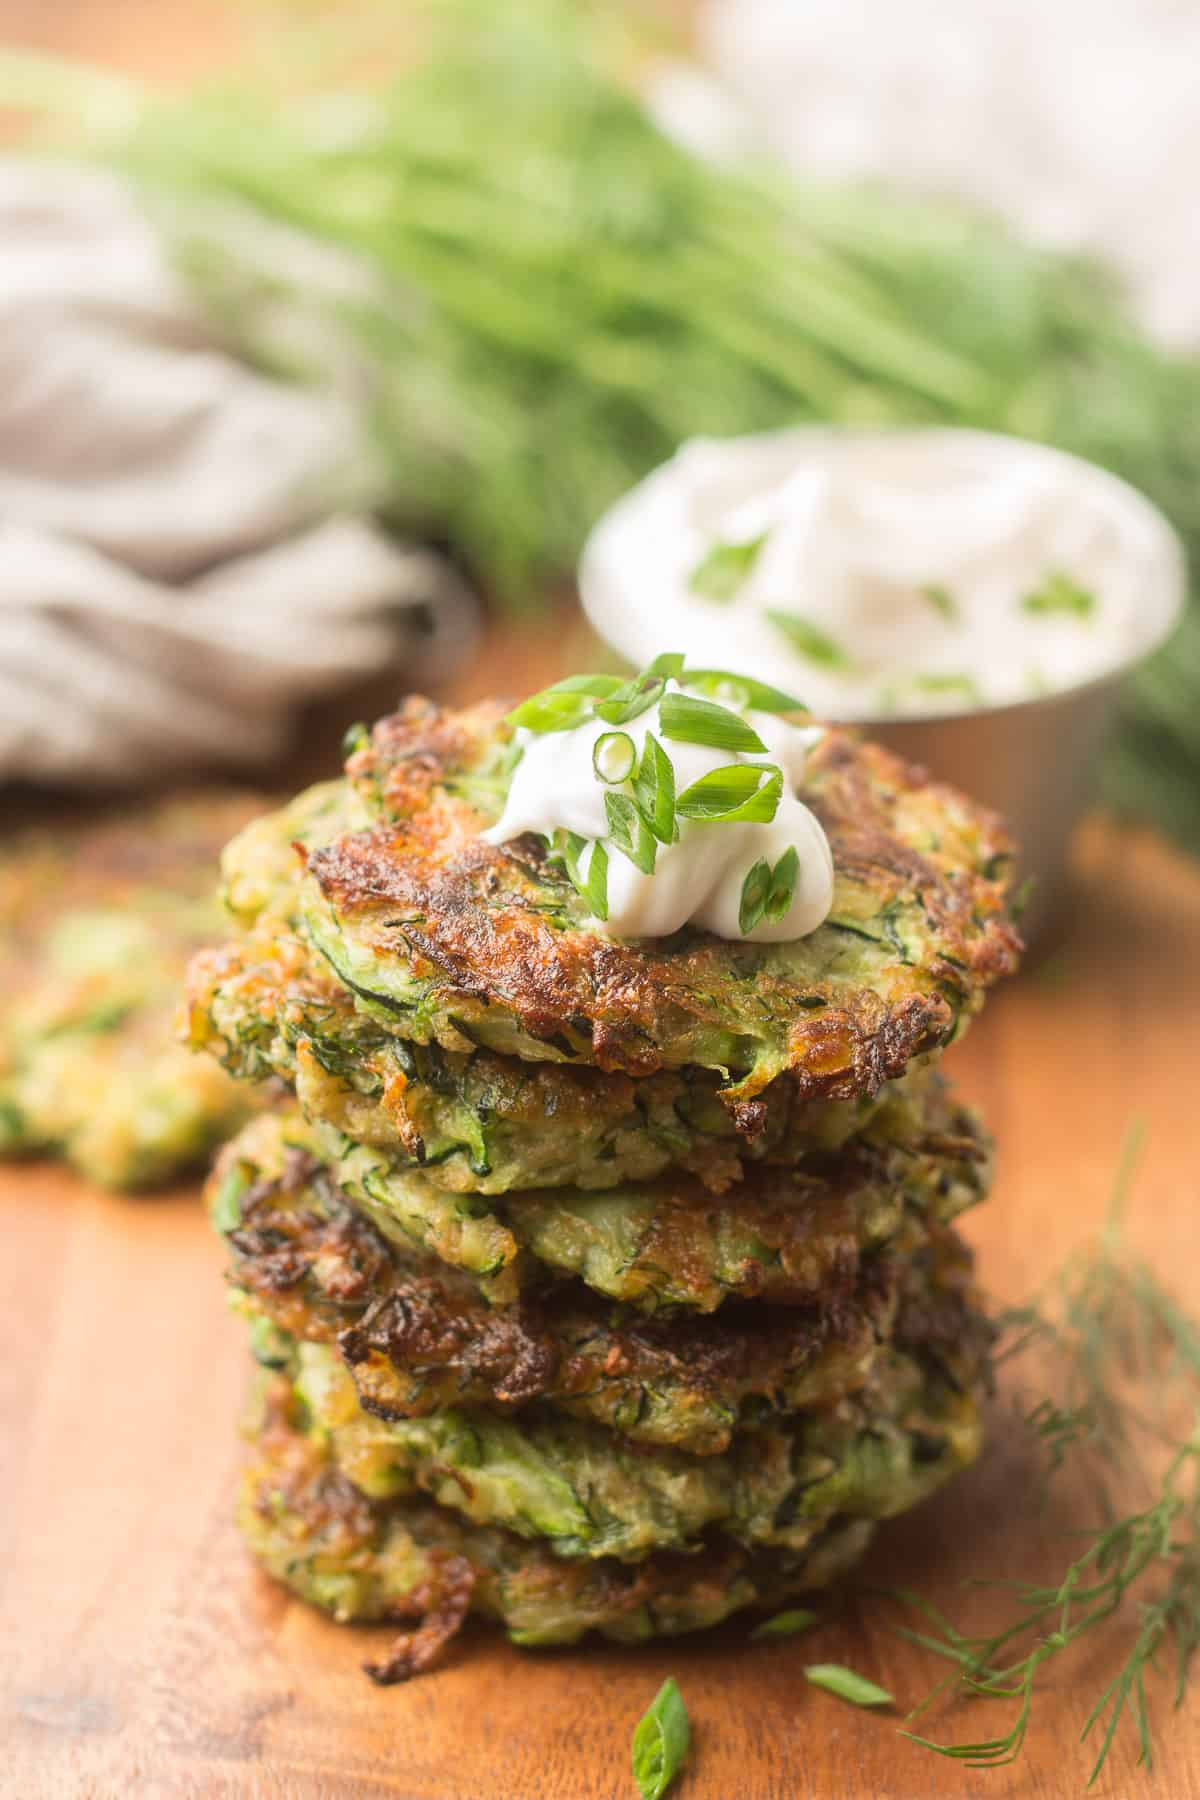 Stack of Vegan Zucchini Fritters with Dish of Cashew Cream and Bunch of Dill in the Background